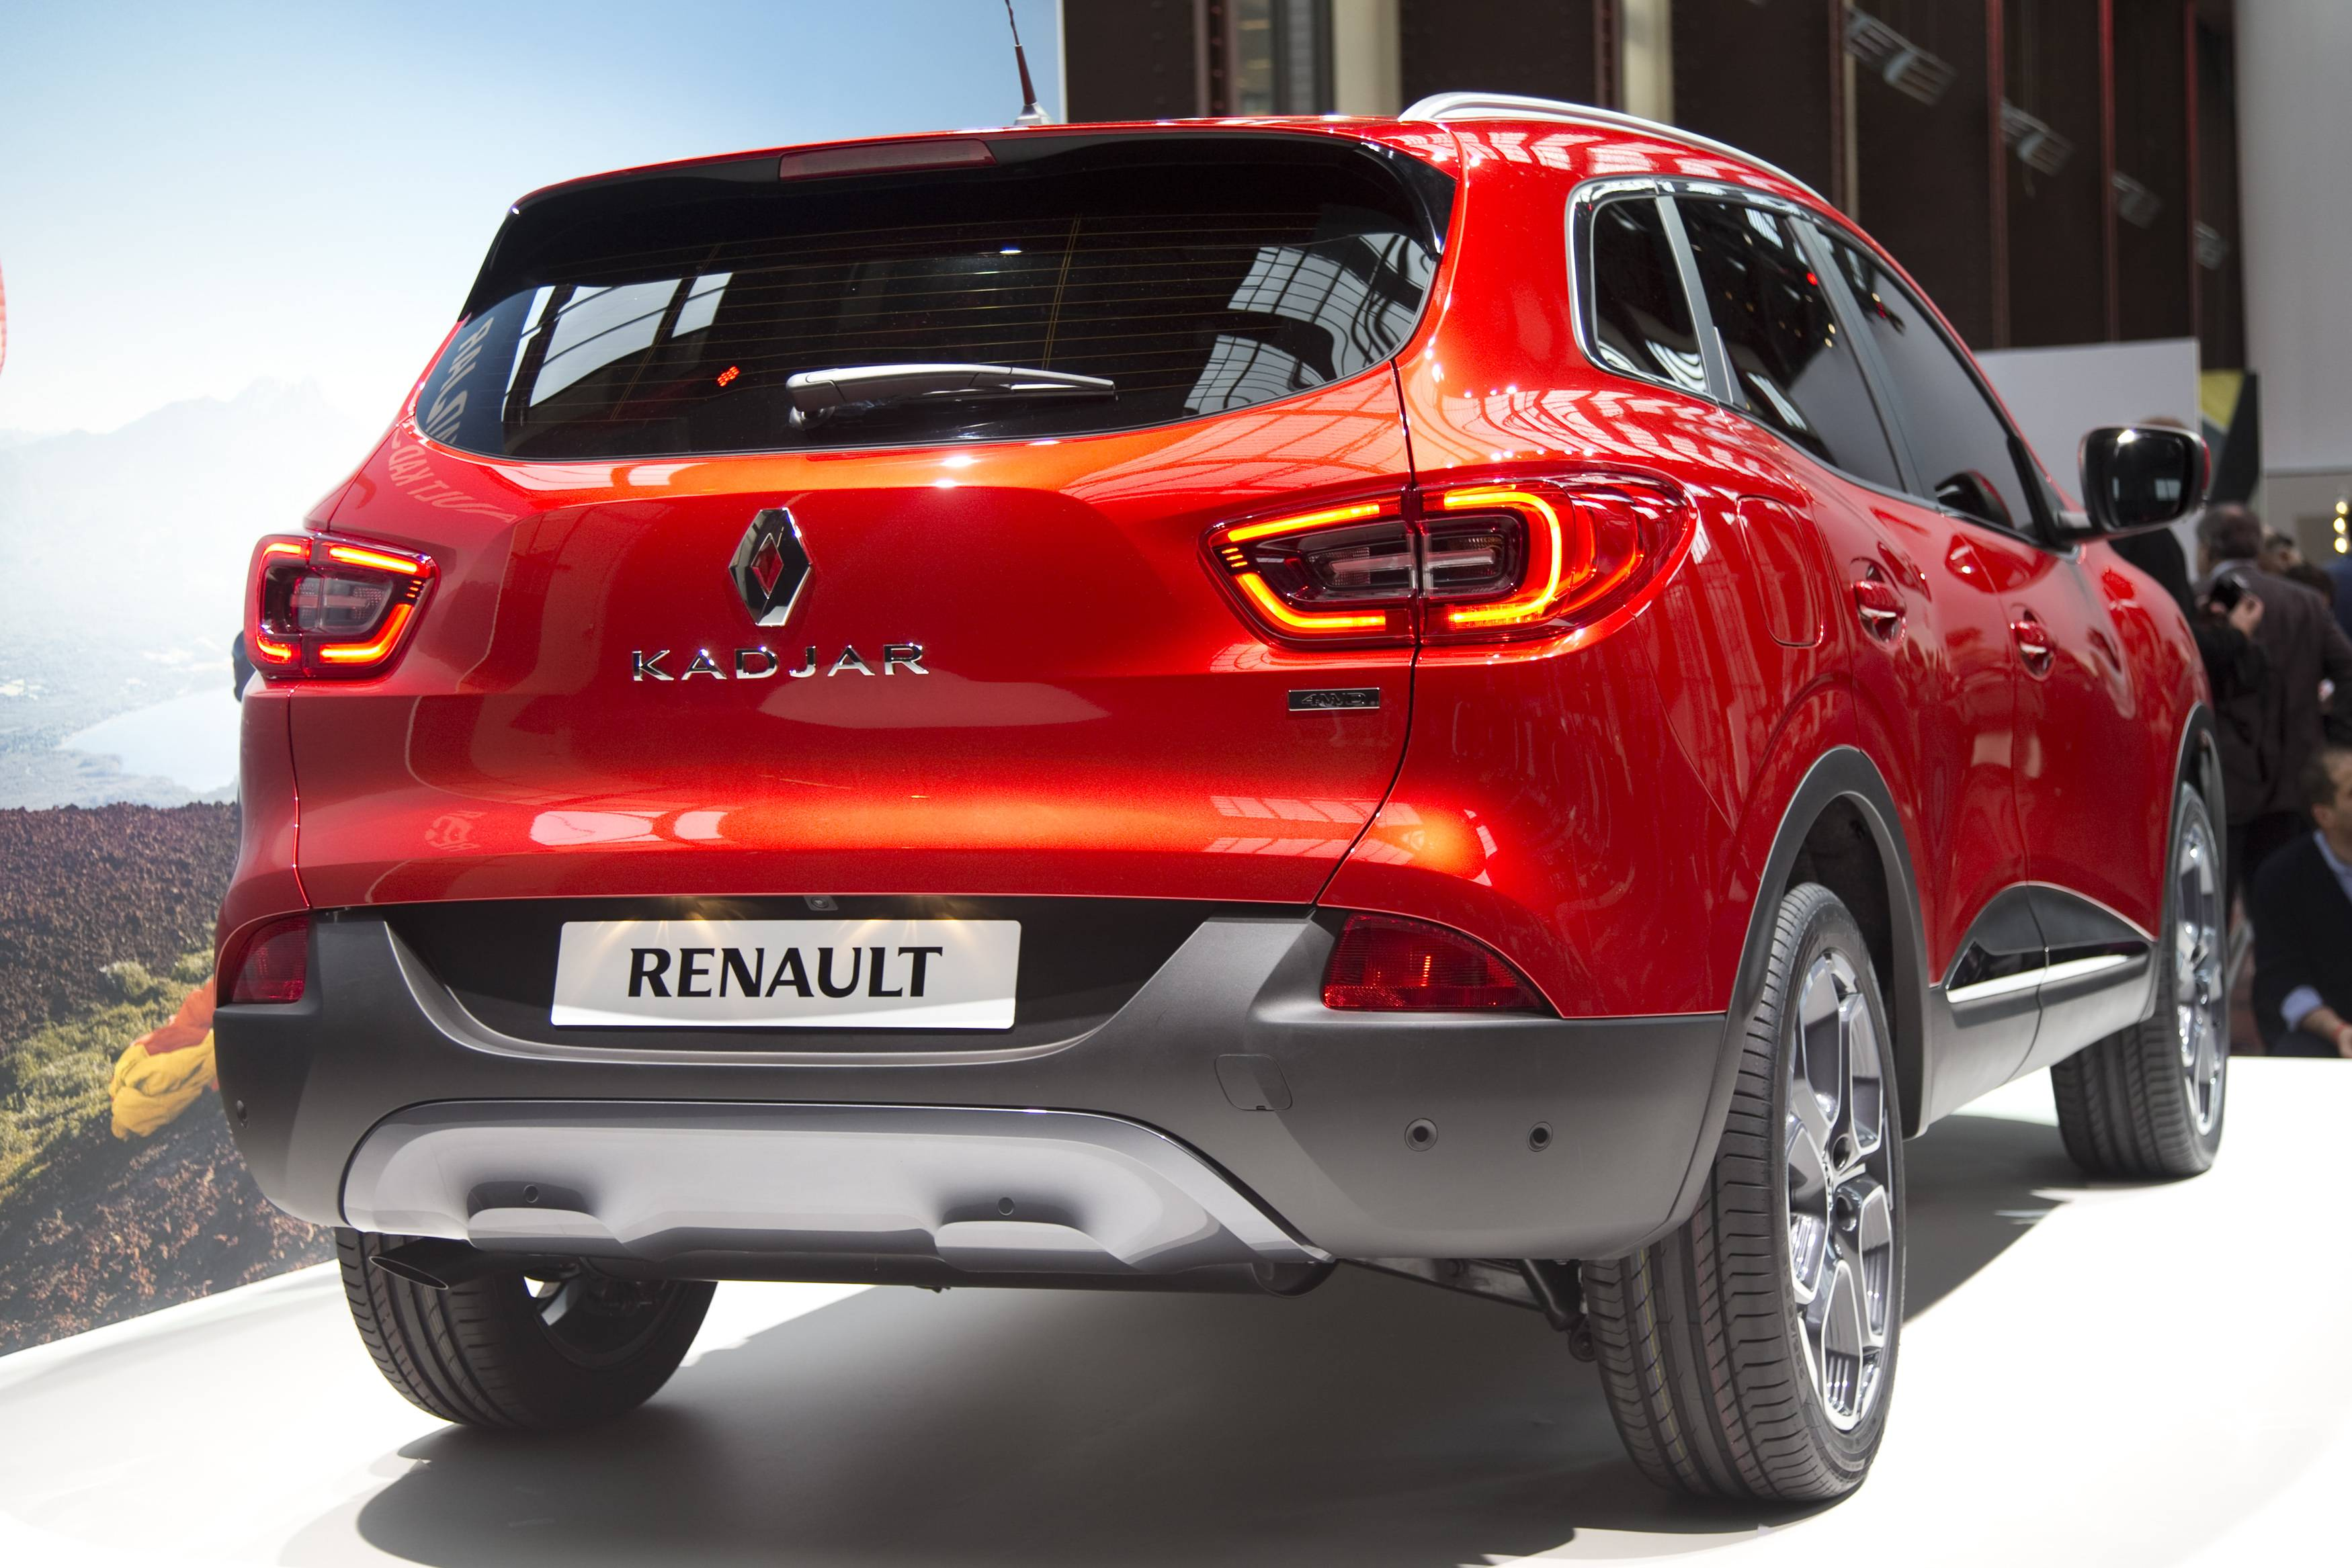 A Renault Kadjar, a new crossover SUV, is seen during a presentation in Saint-Denis near Paris ...